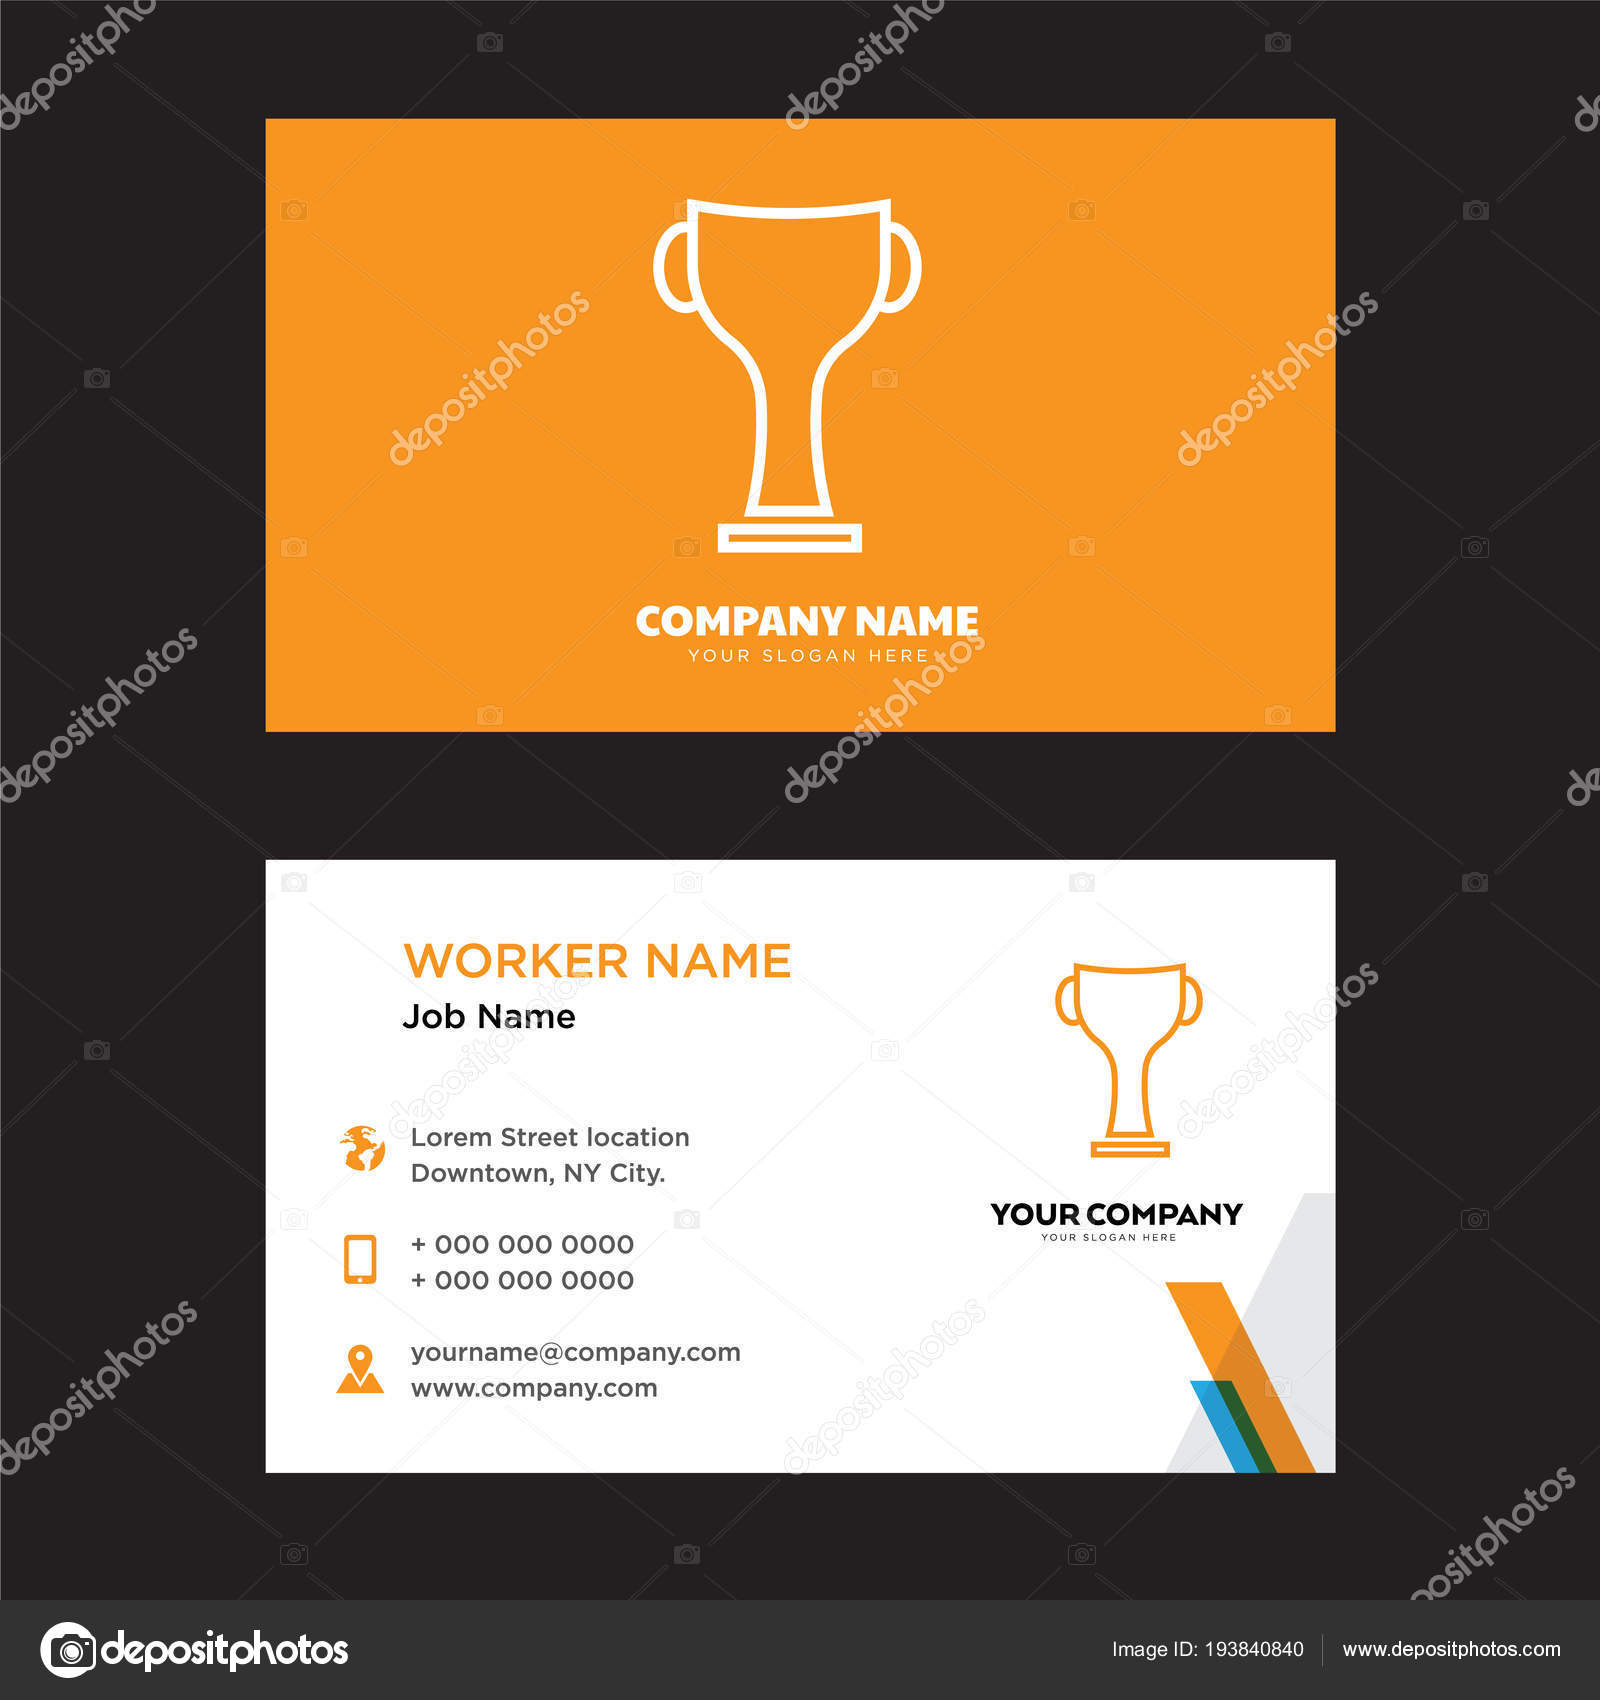 Winner award business card design stock vector vectorbest winner award business card design stock vector reheart Choice Image